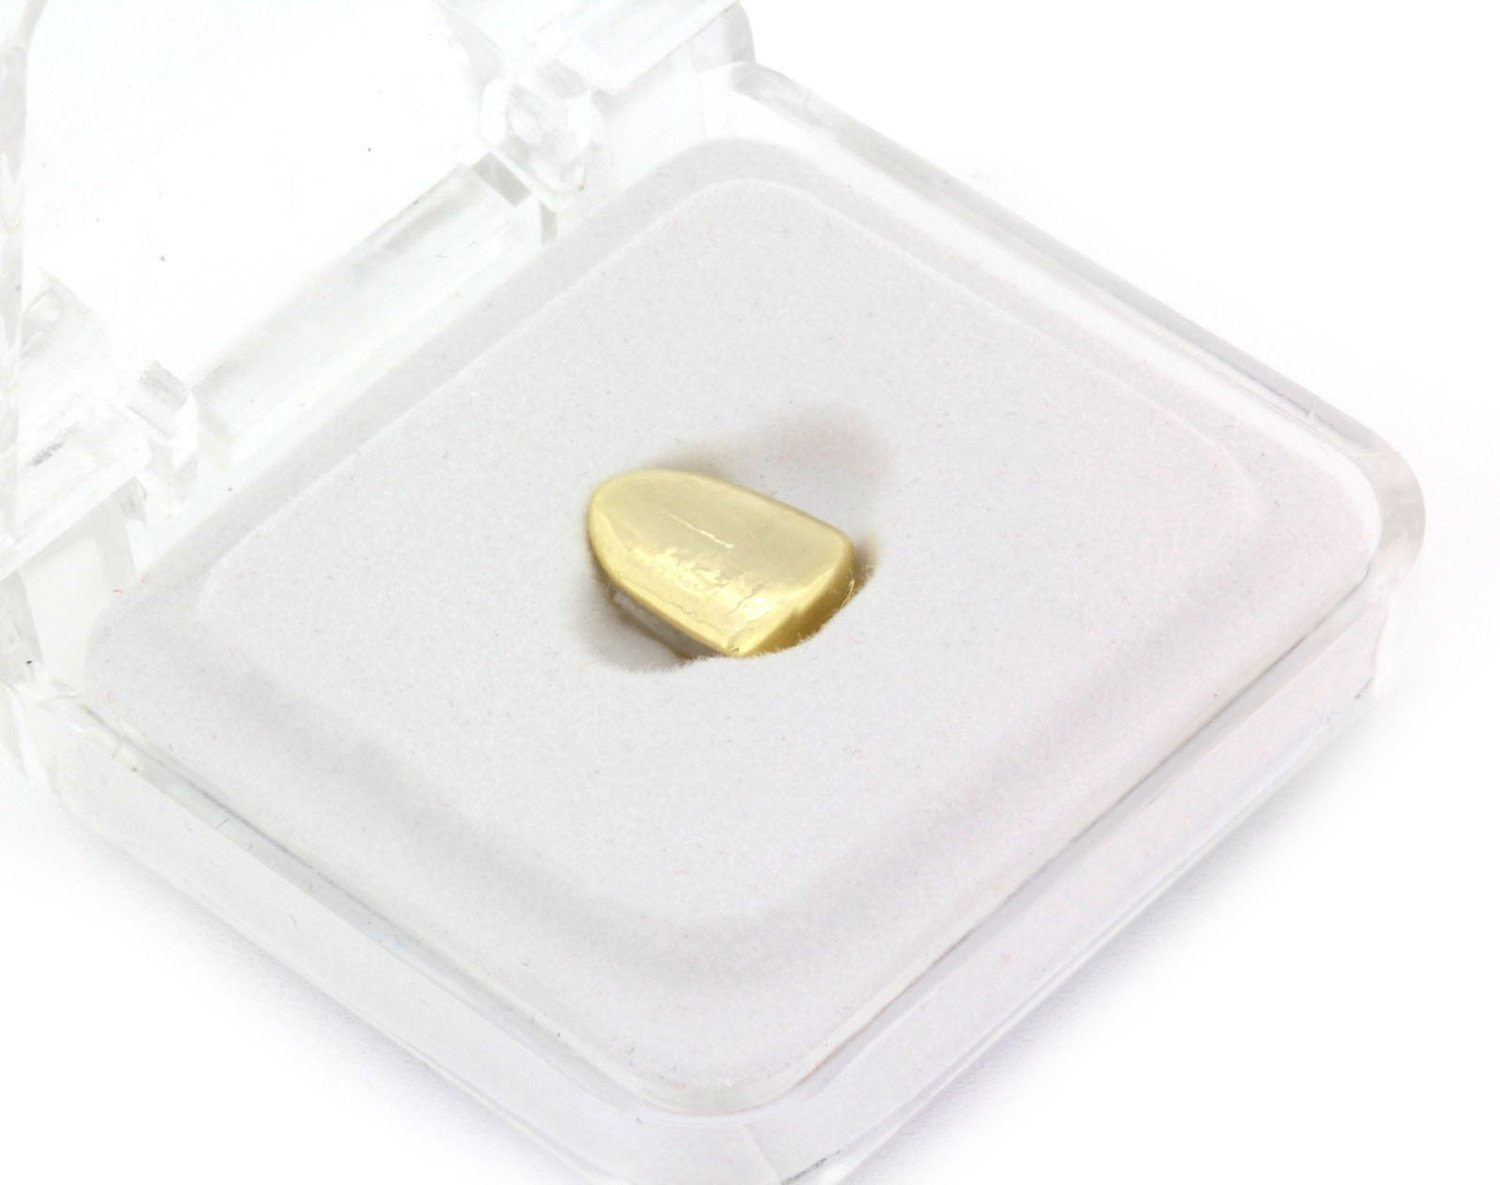 Amazon.com: hip hop 14k gold plated removeable grill (single tooth cap) solid: jewelry